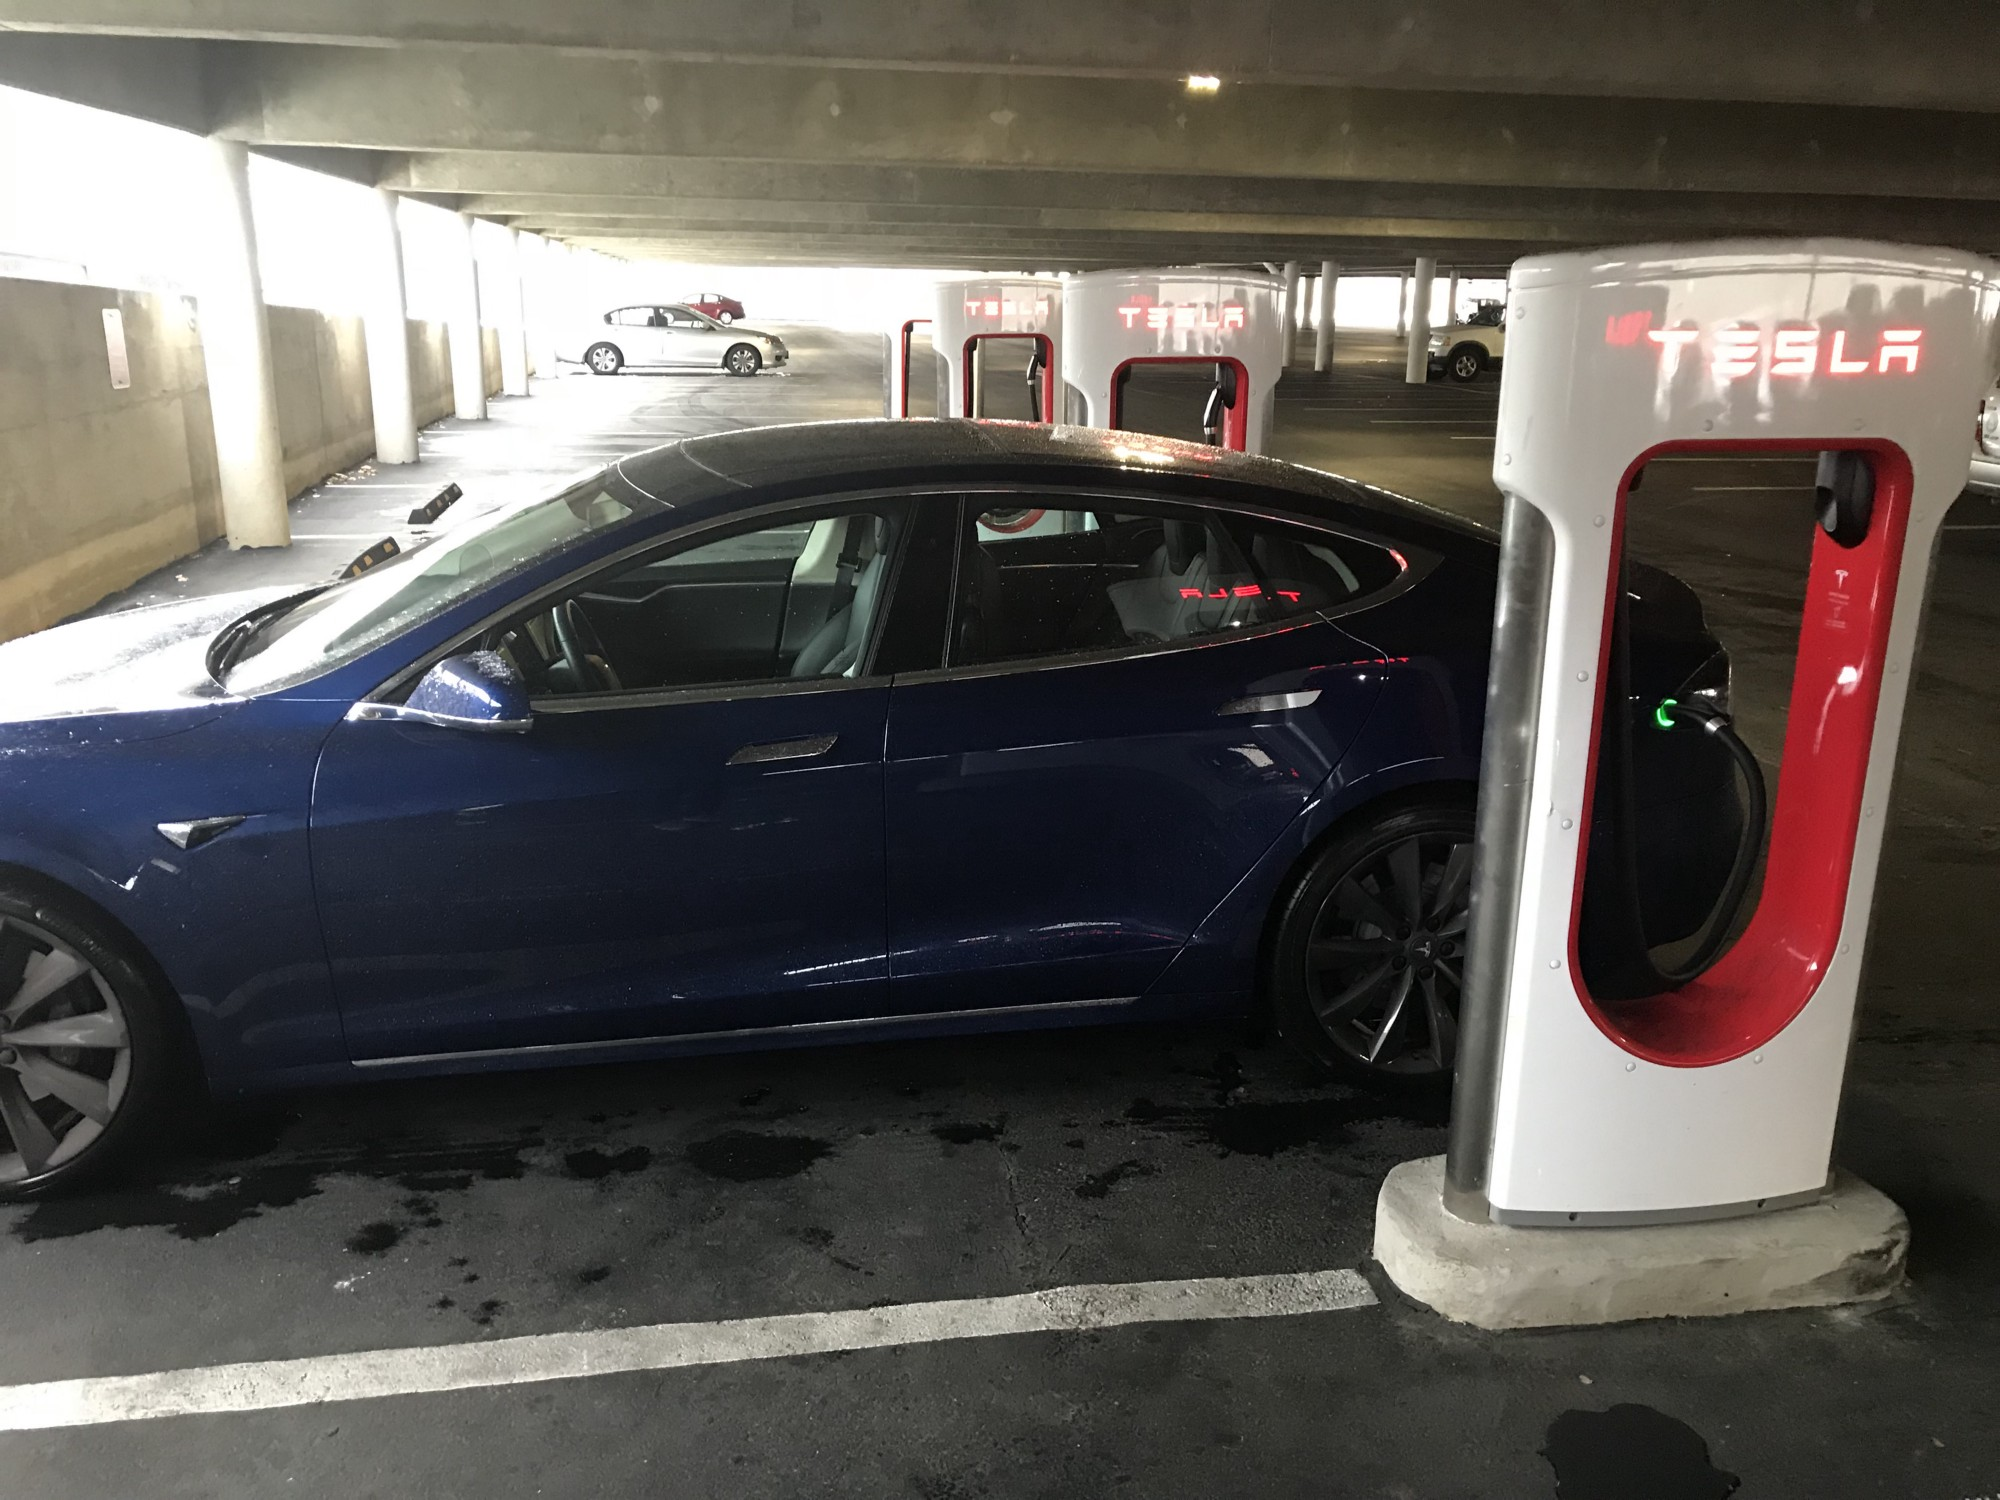 How Prepared Is The Charging Network For Growth In Electric Wiring Garage Tesla My Car Recharging At A High Speed Facility Maryland